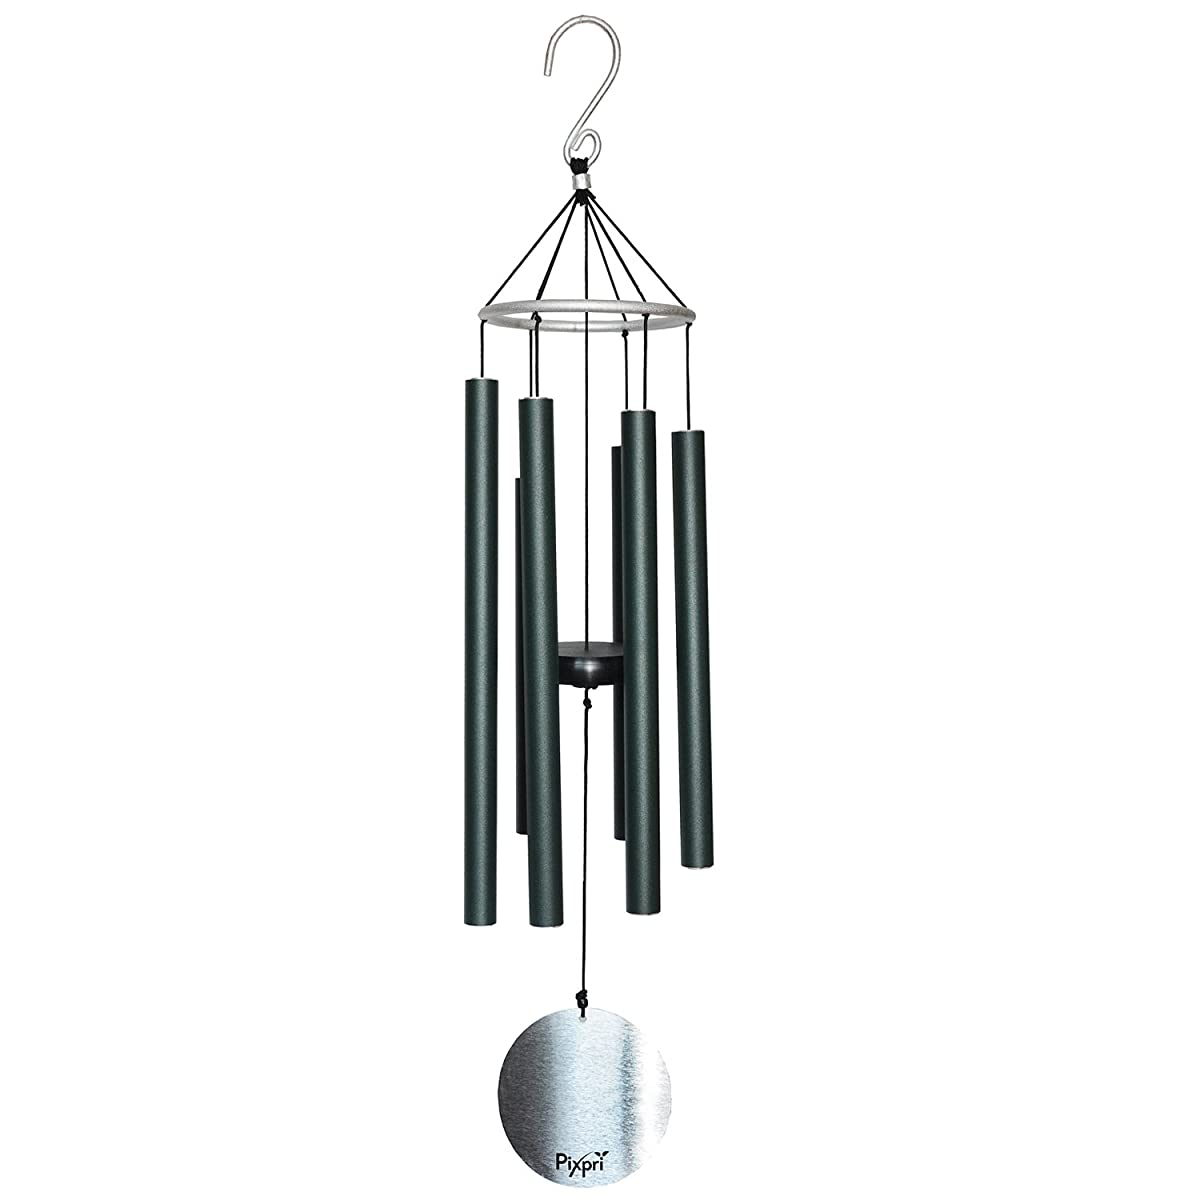 Pixpri Wind Chimes, Outdoor Garden and Home Decor, Elegant Metal Design Windchimes with Soft, B Pentatonic Scale, Beautiful Wind chime